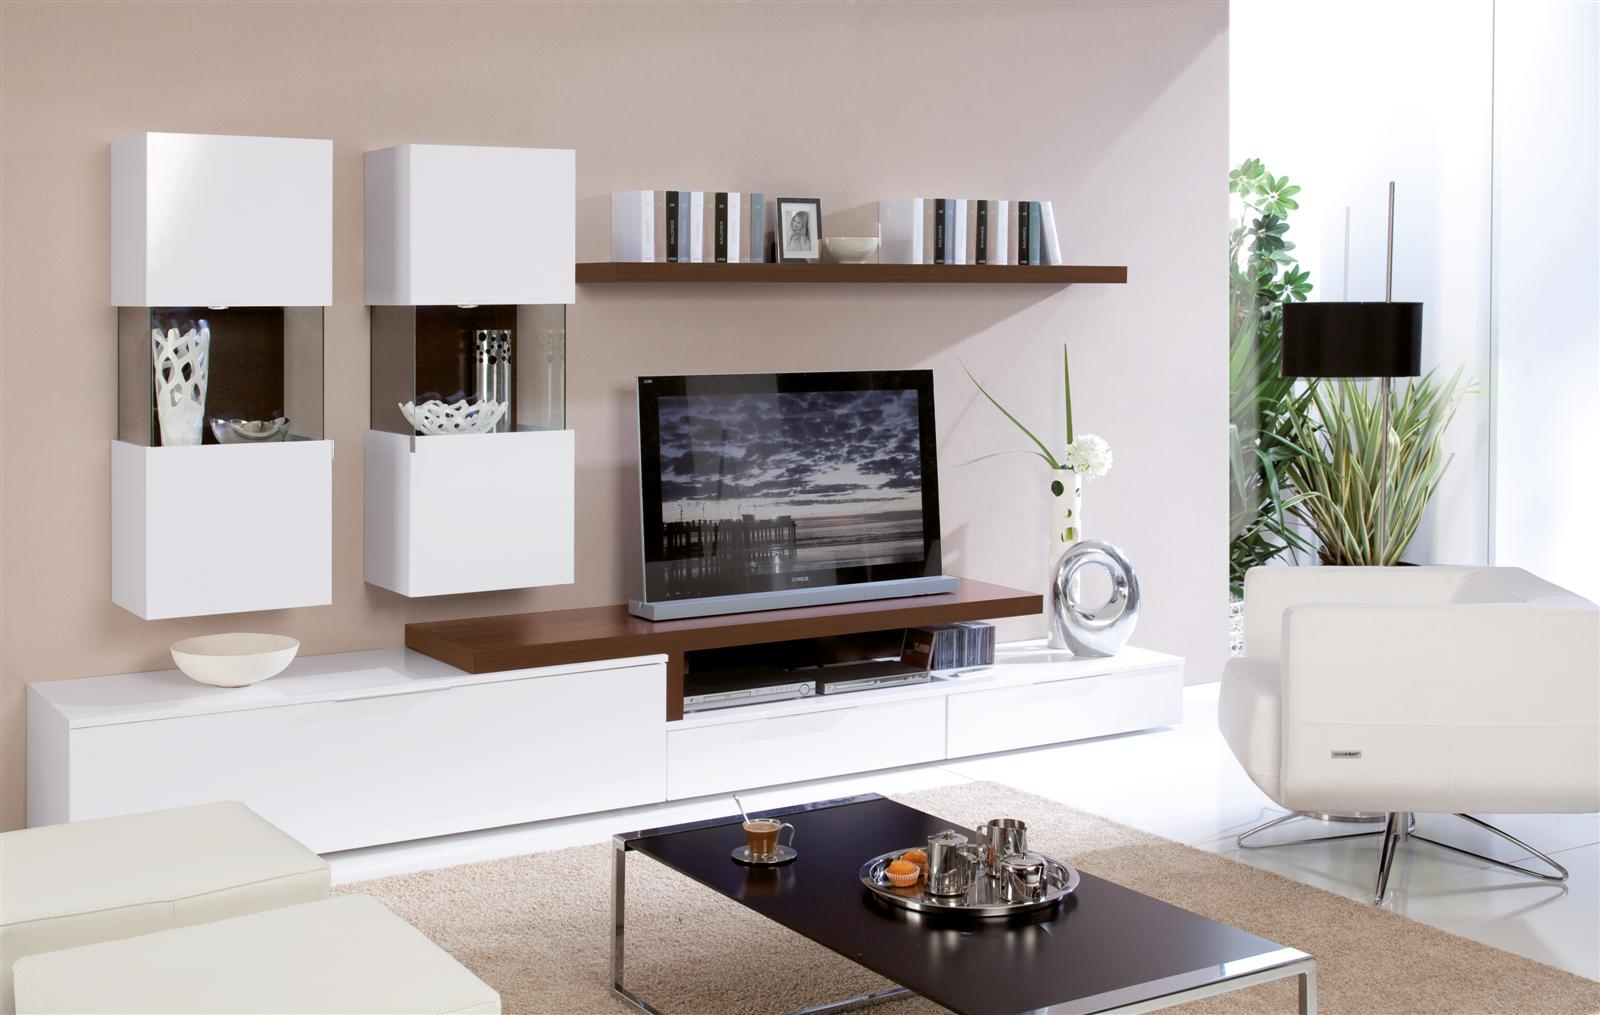 20 modern tv unit design ideas for bedroom living room - Small tv for kitchen wall ...